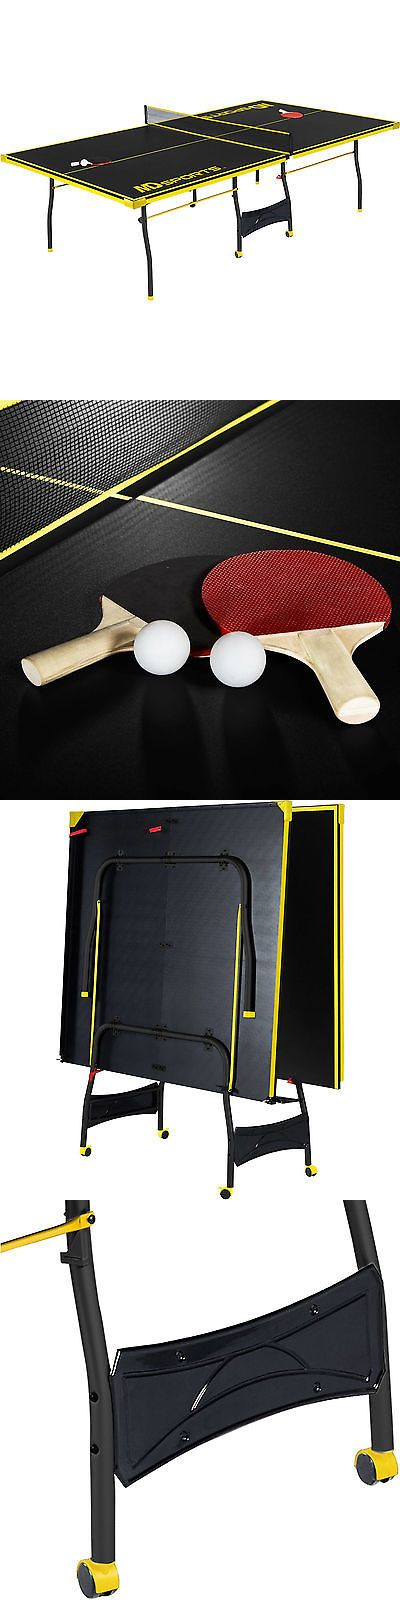 Tables 97075: Ping Pong Table Tennis Folding Tournament Size Game Set Indoor Outdoor Sport -> BUY IT NOW ONLY: $113.99 on eBay!